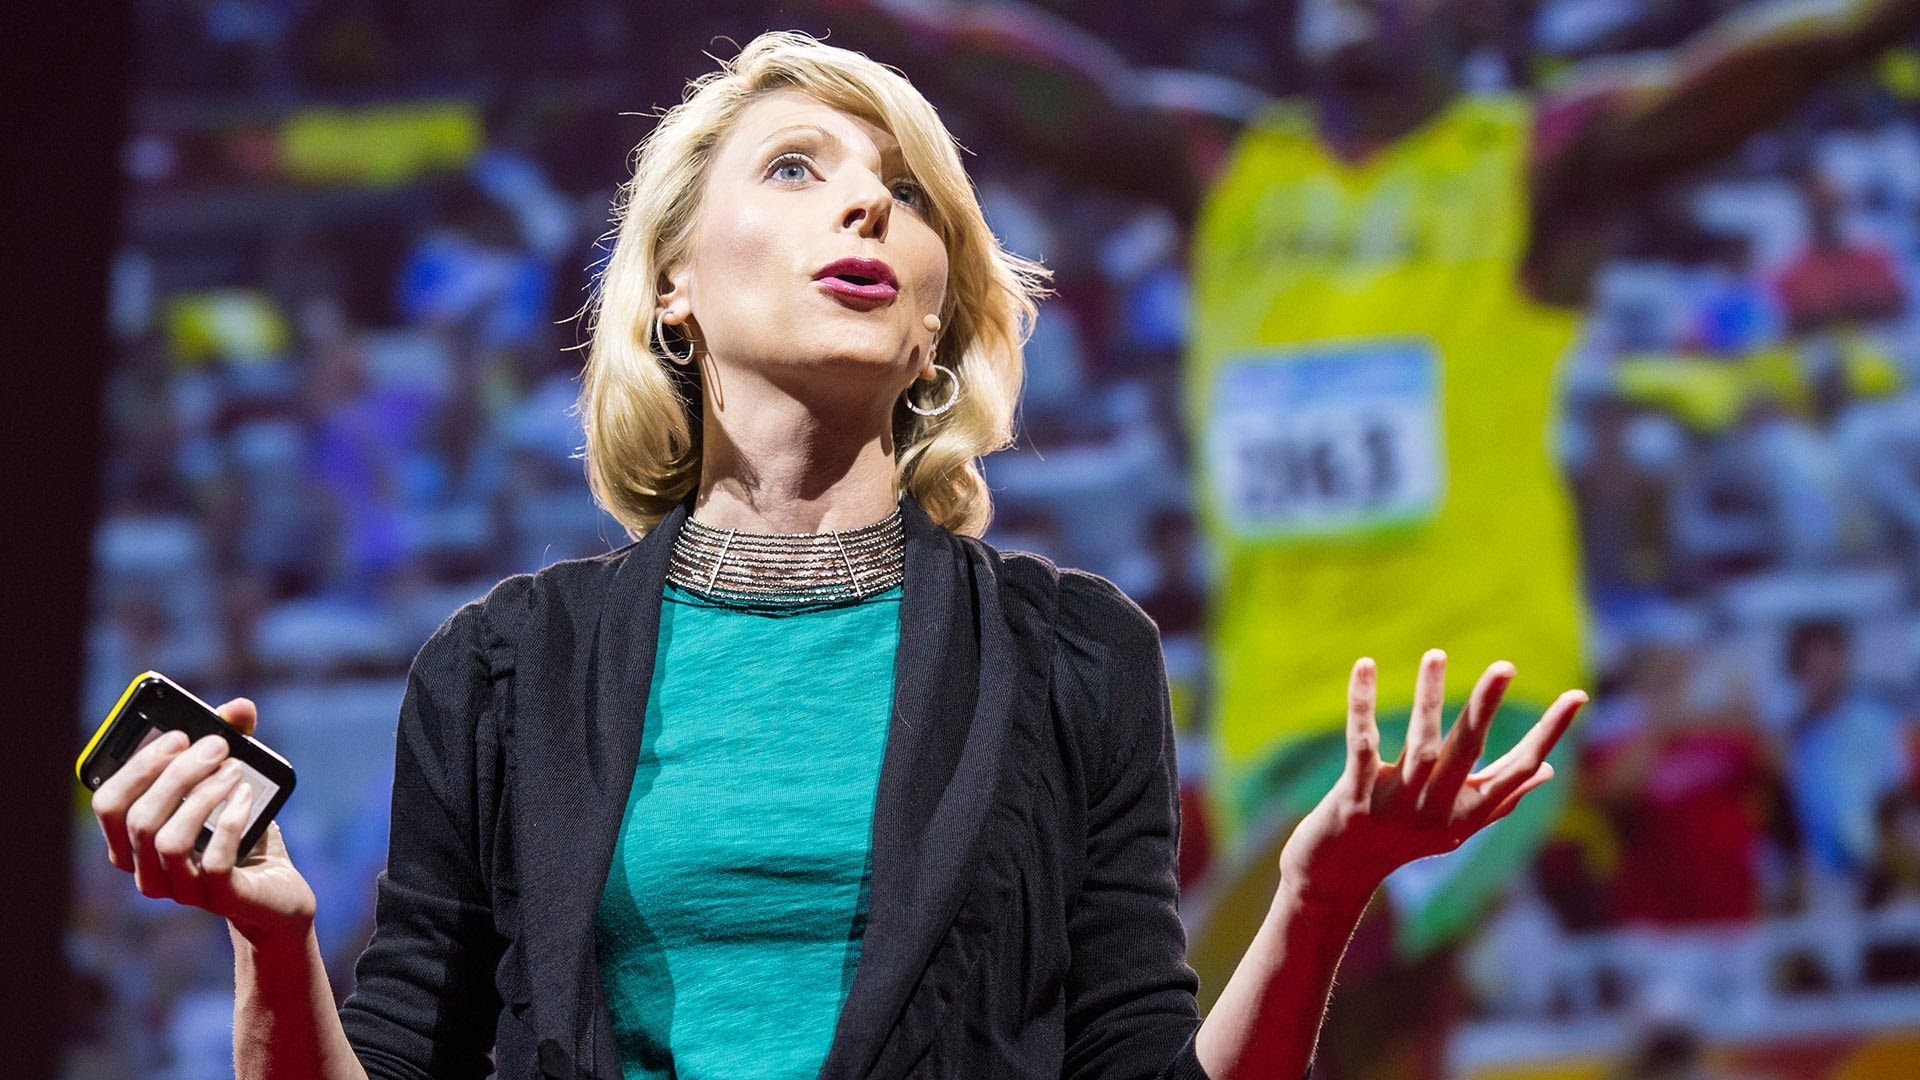 Thumbnail for: Amy Cuddy: Your body language shapes who you are